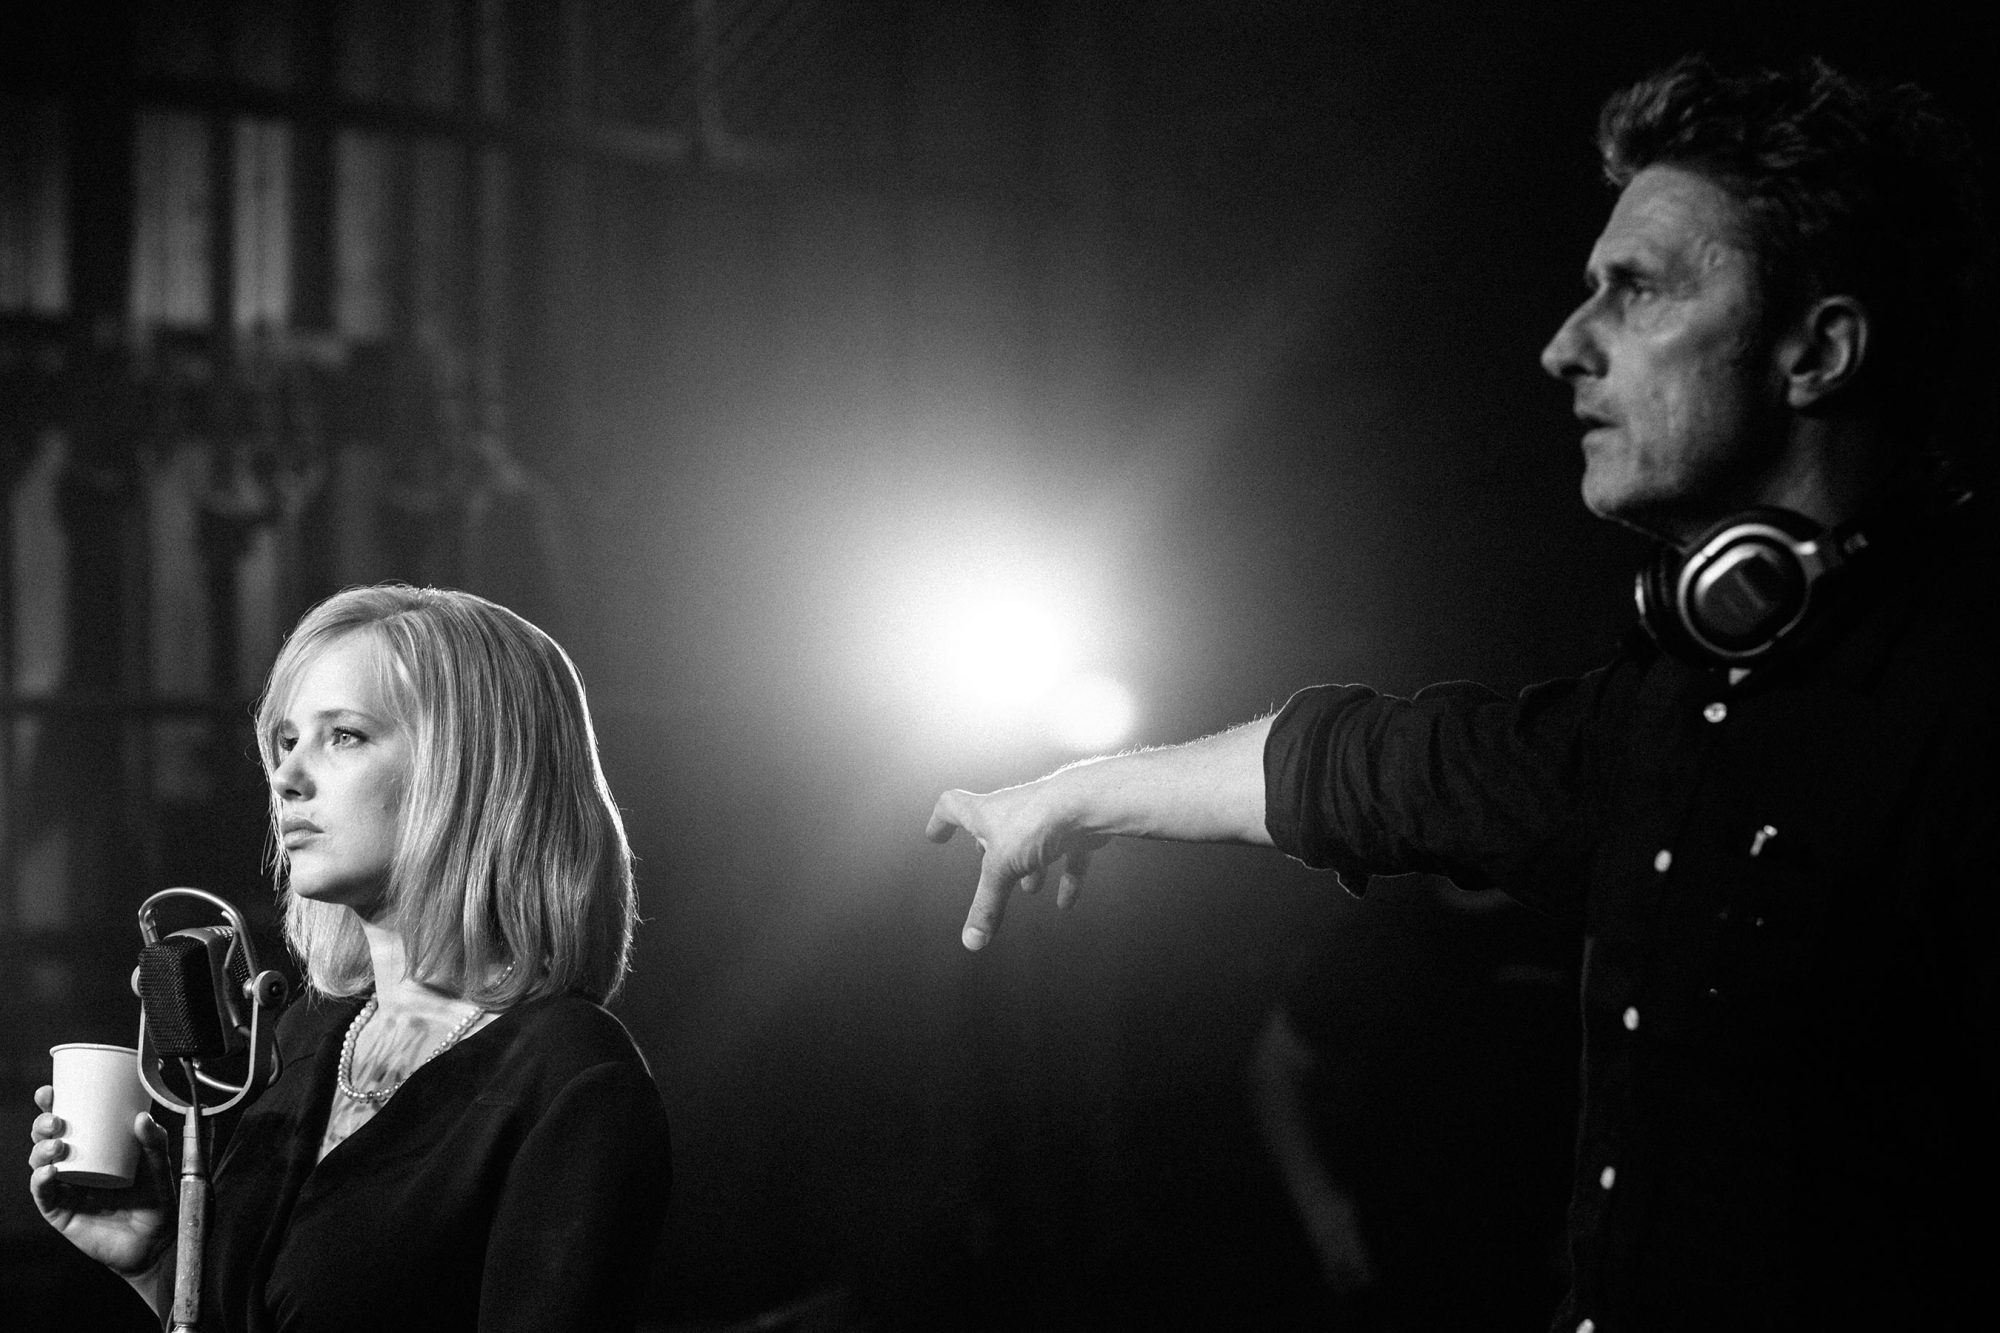 Cold WarJoanna Kulig and Director Pawel Pawlikowski on set